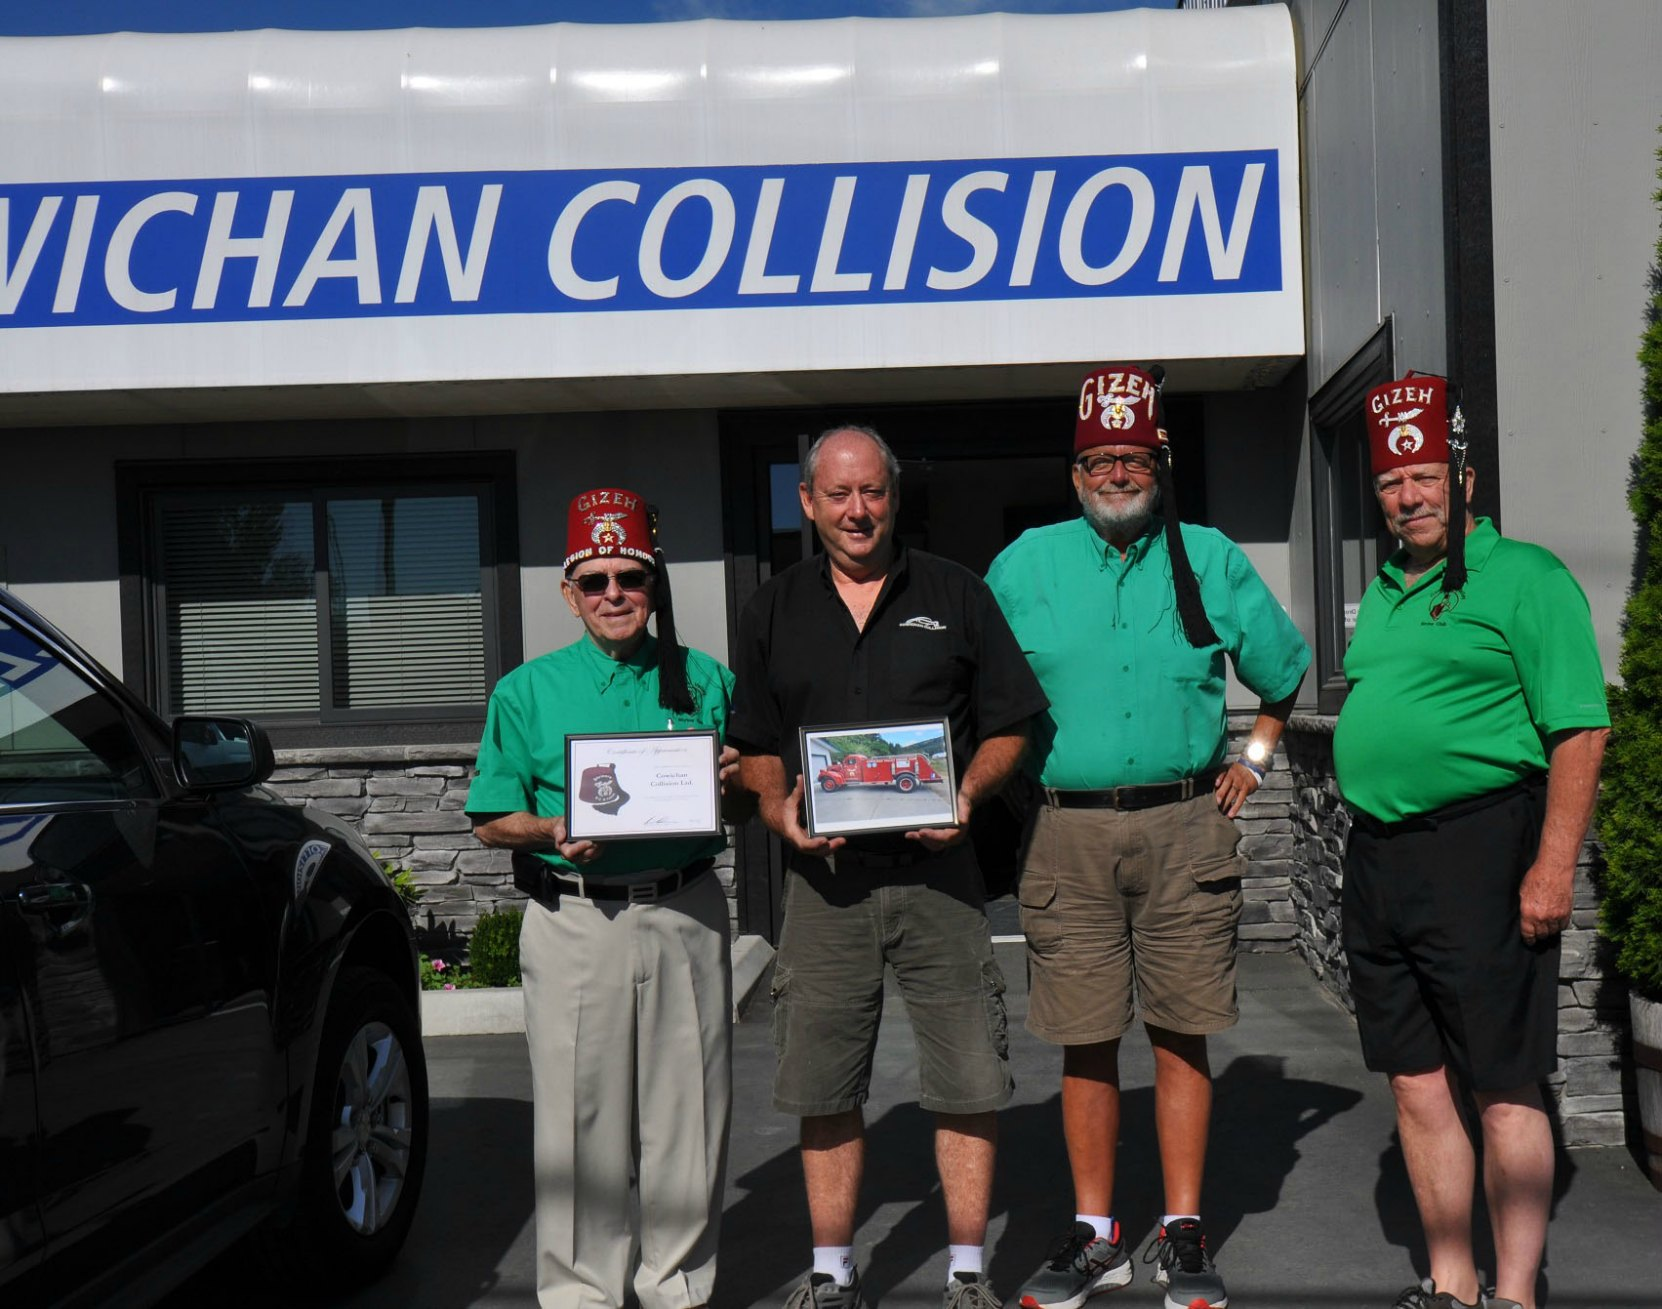 Cowichan valley Shrine Club members Brian Nicol, Tom Mitchell and Pat Ffyfe present Certificate of Appreciation to Ron Mellson, owner of Cowichan Collision, Duncan, B.C. on 26 July 2017 (photo by Cowichan Valley Shrine Club)